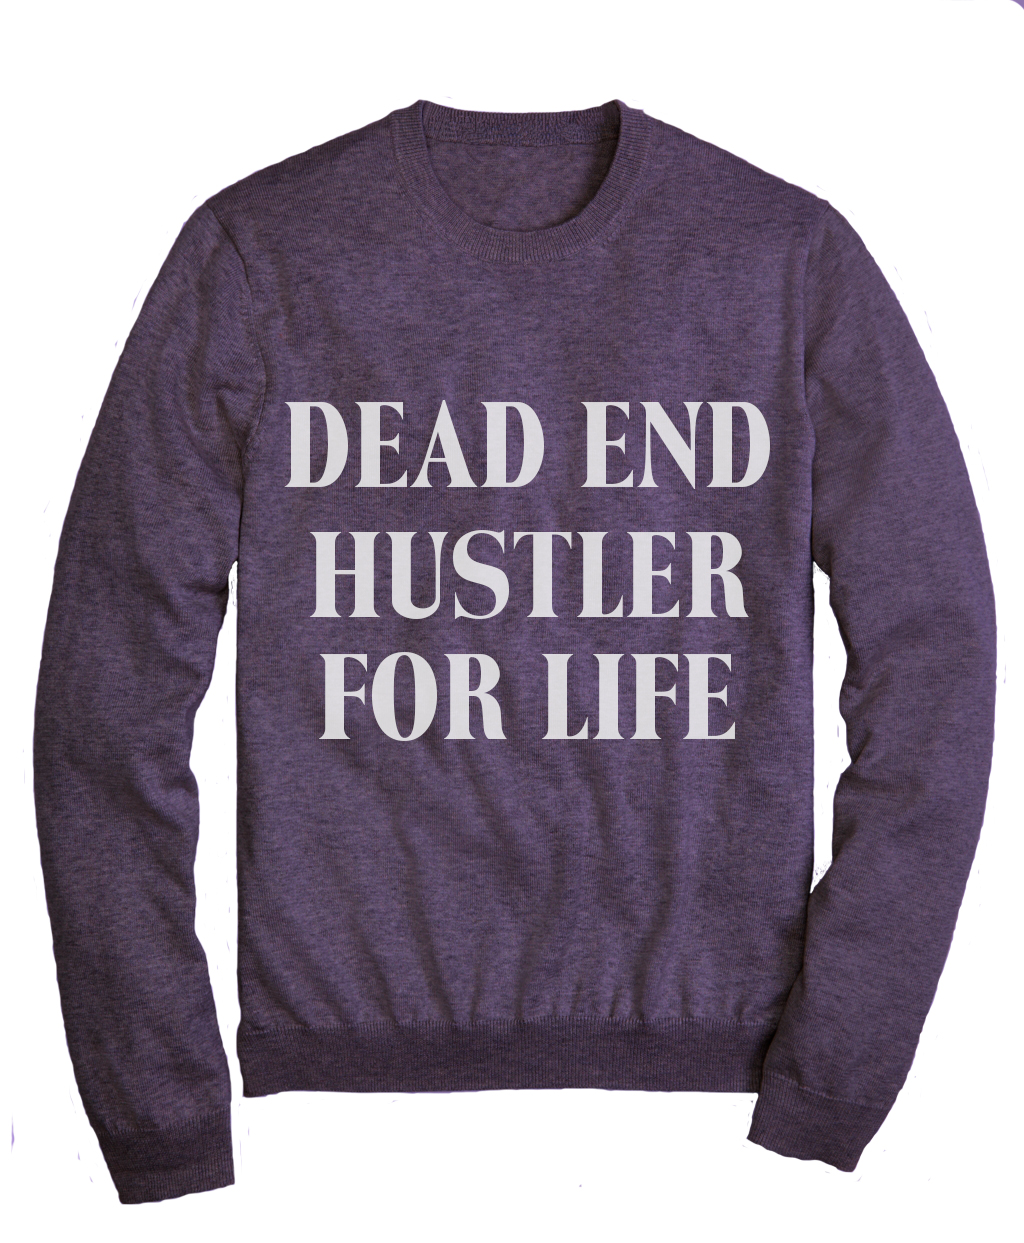 DAED-END-HUSTLER-FOR-LIFE-PURP.jpg